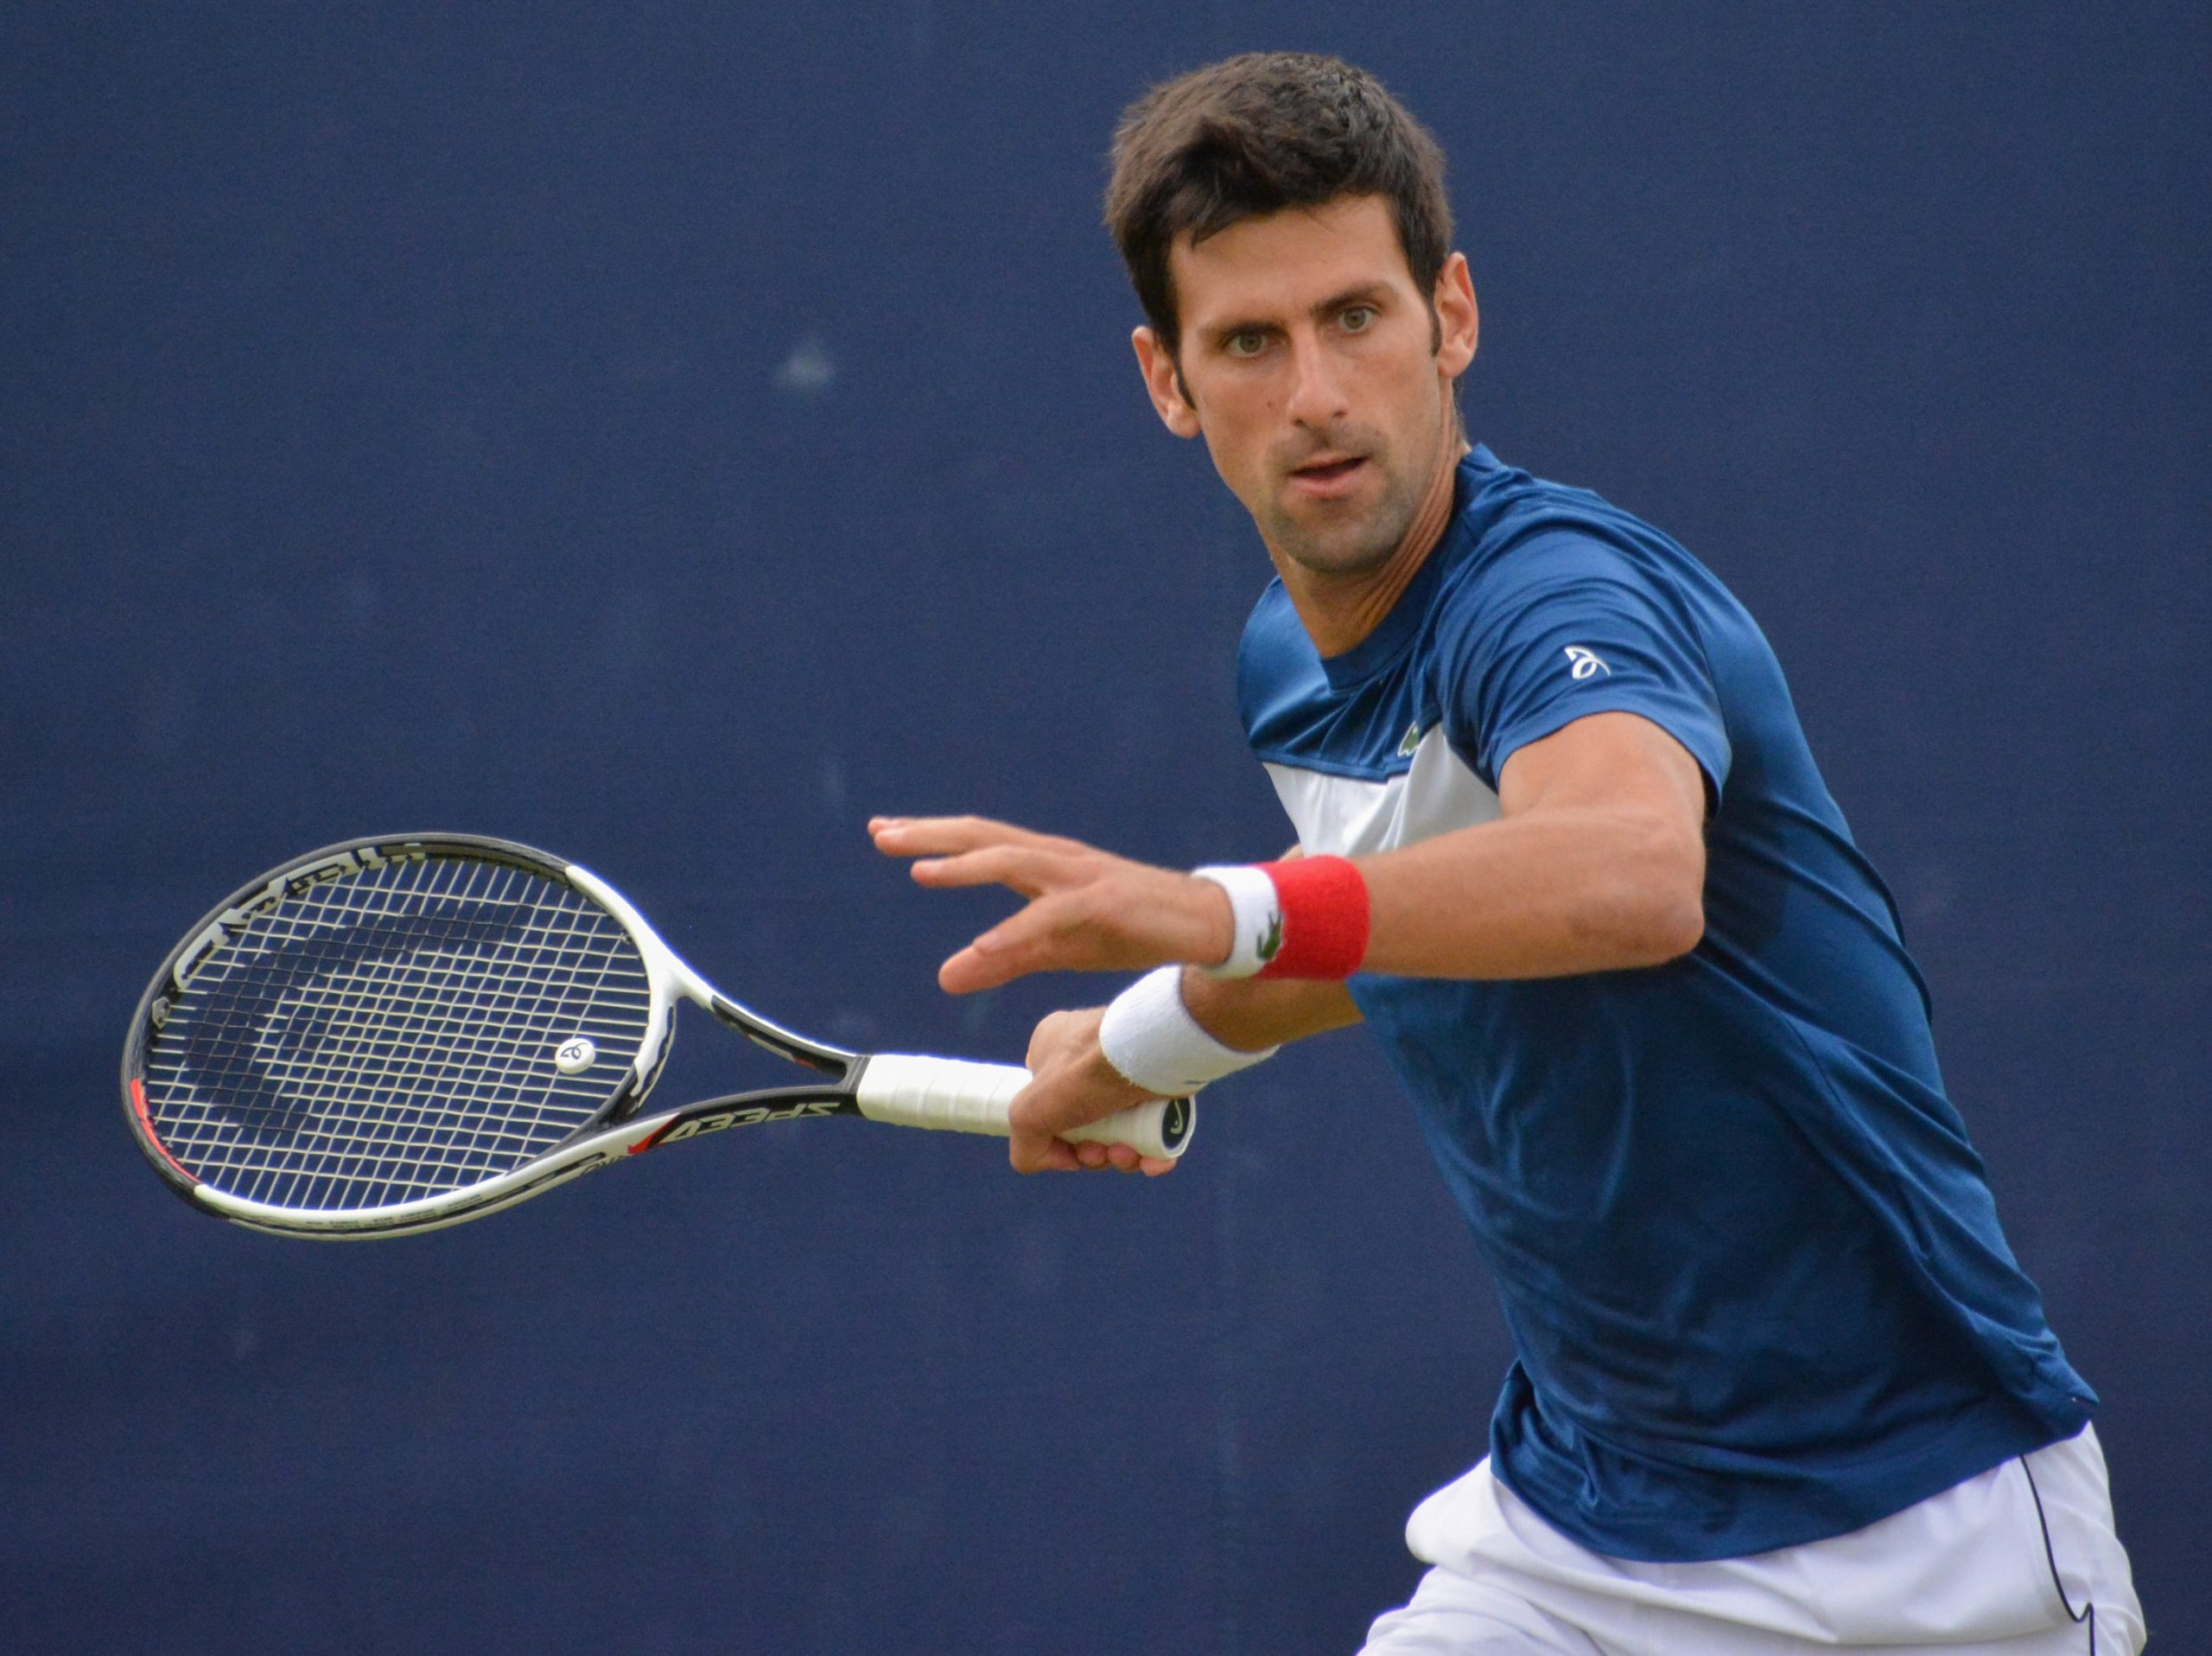 Novak Djokovic gets disqualified from 2020 US Open for hitting ball at line judge